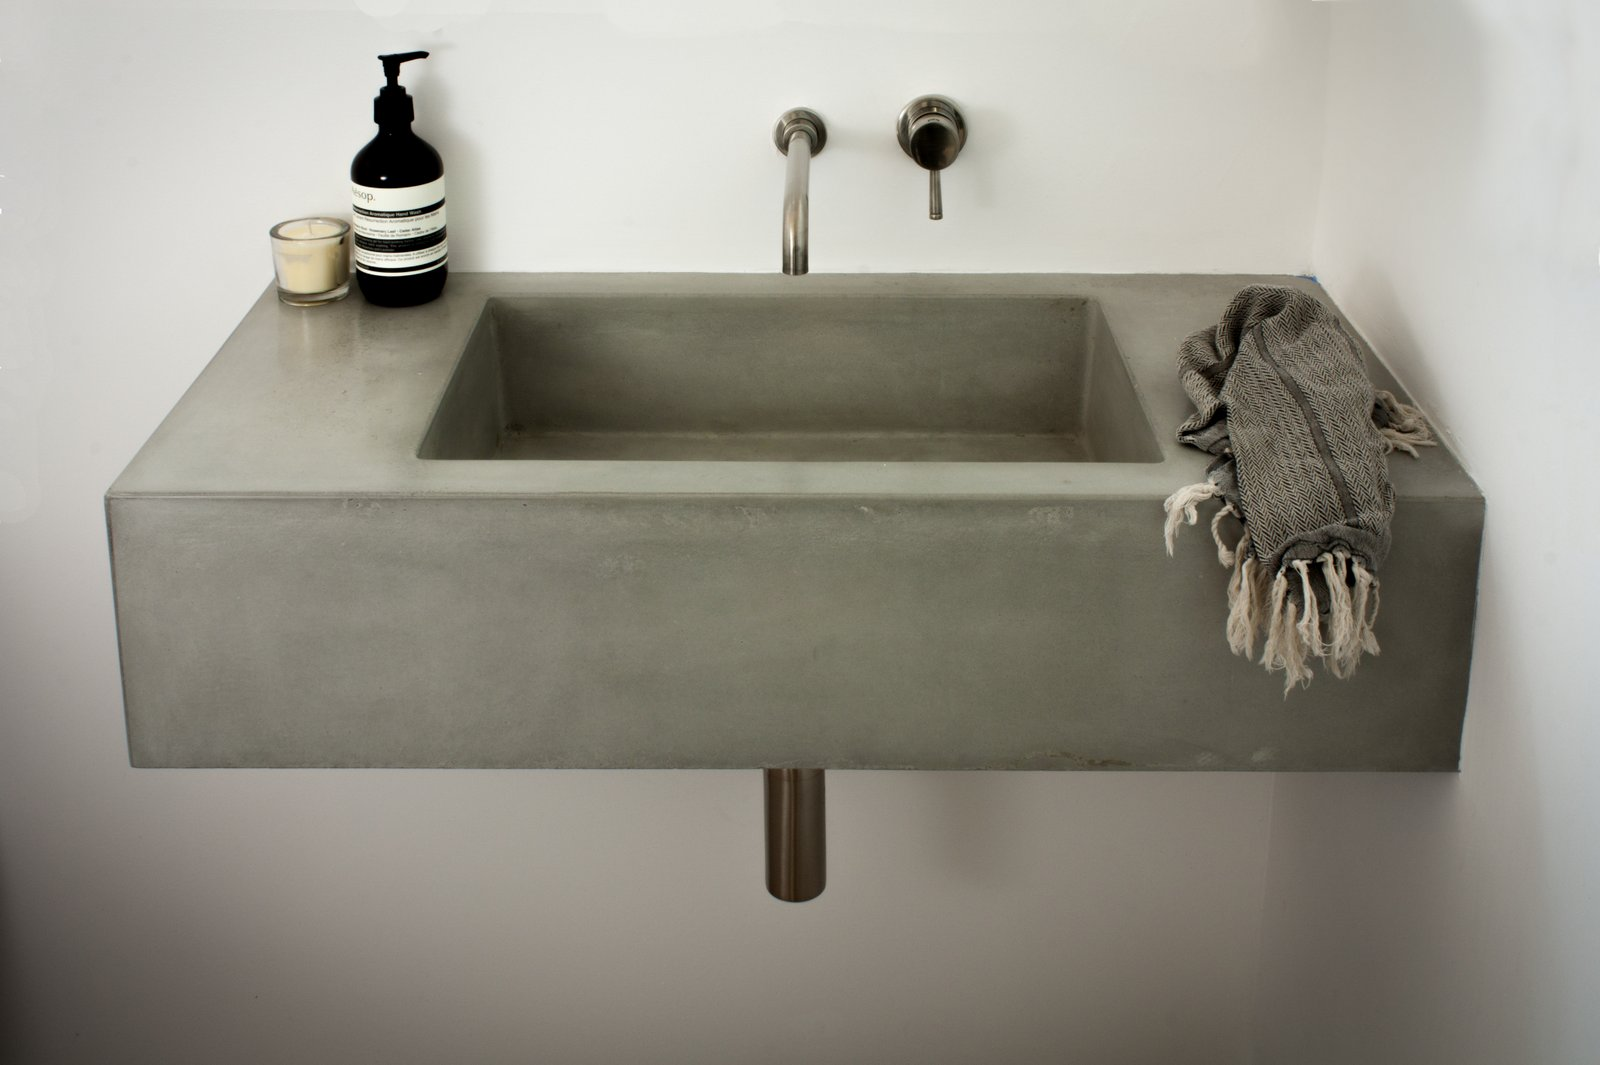 Concrete Box Sink